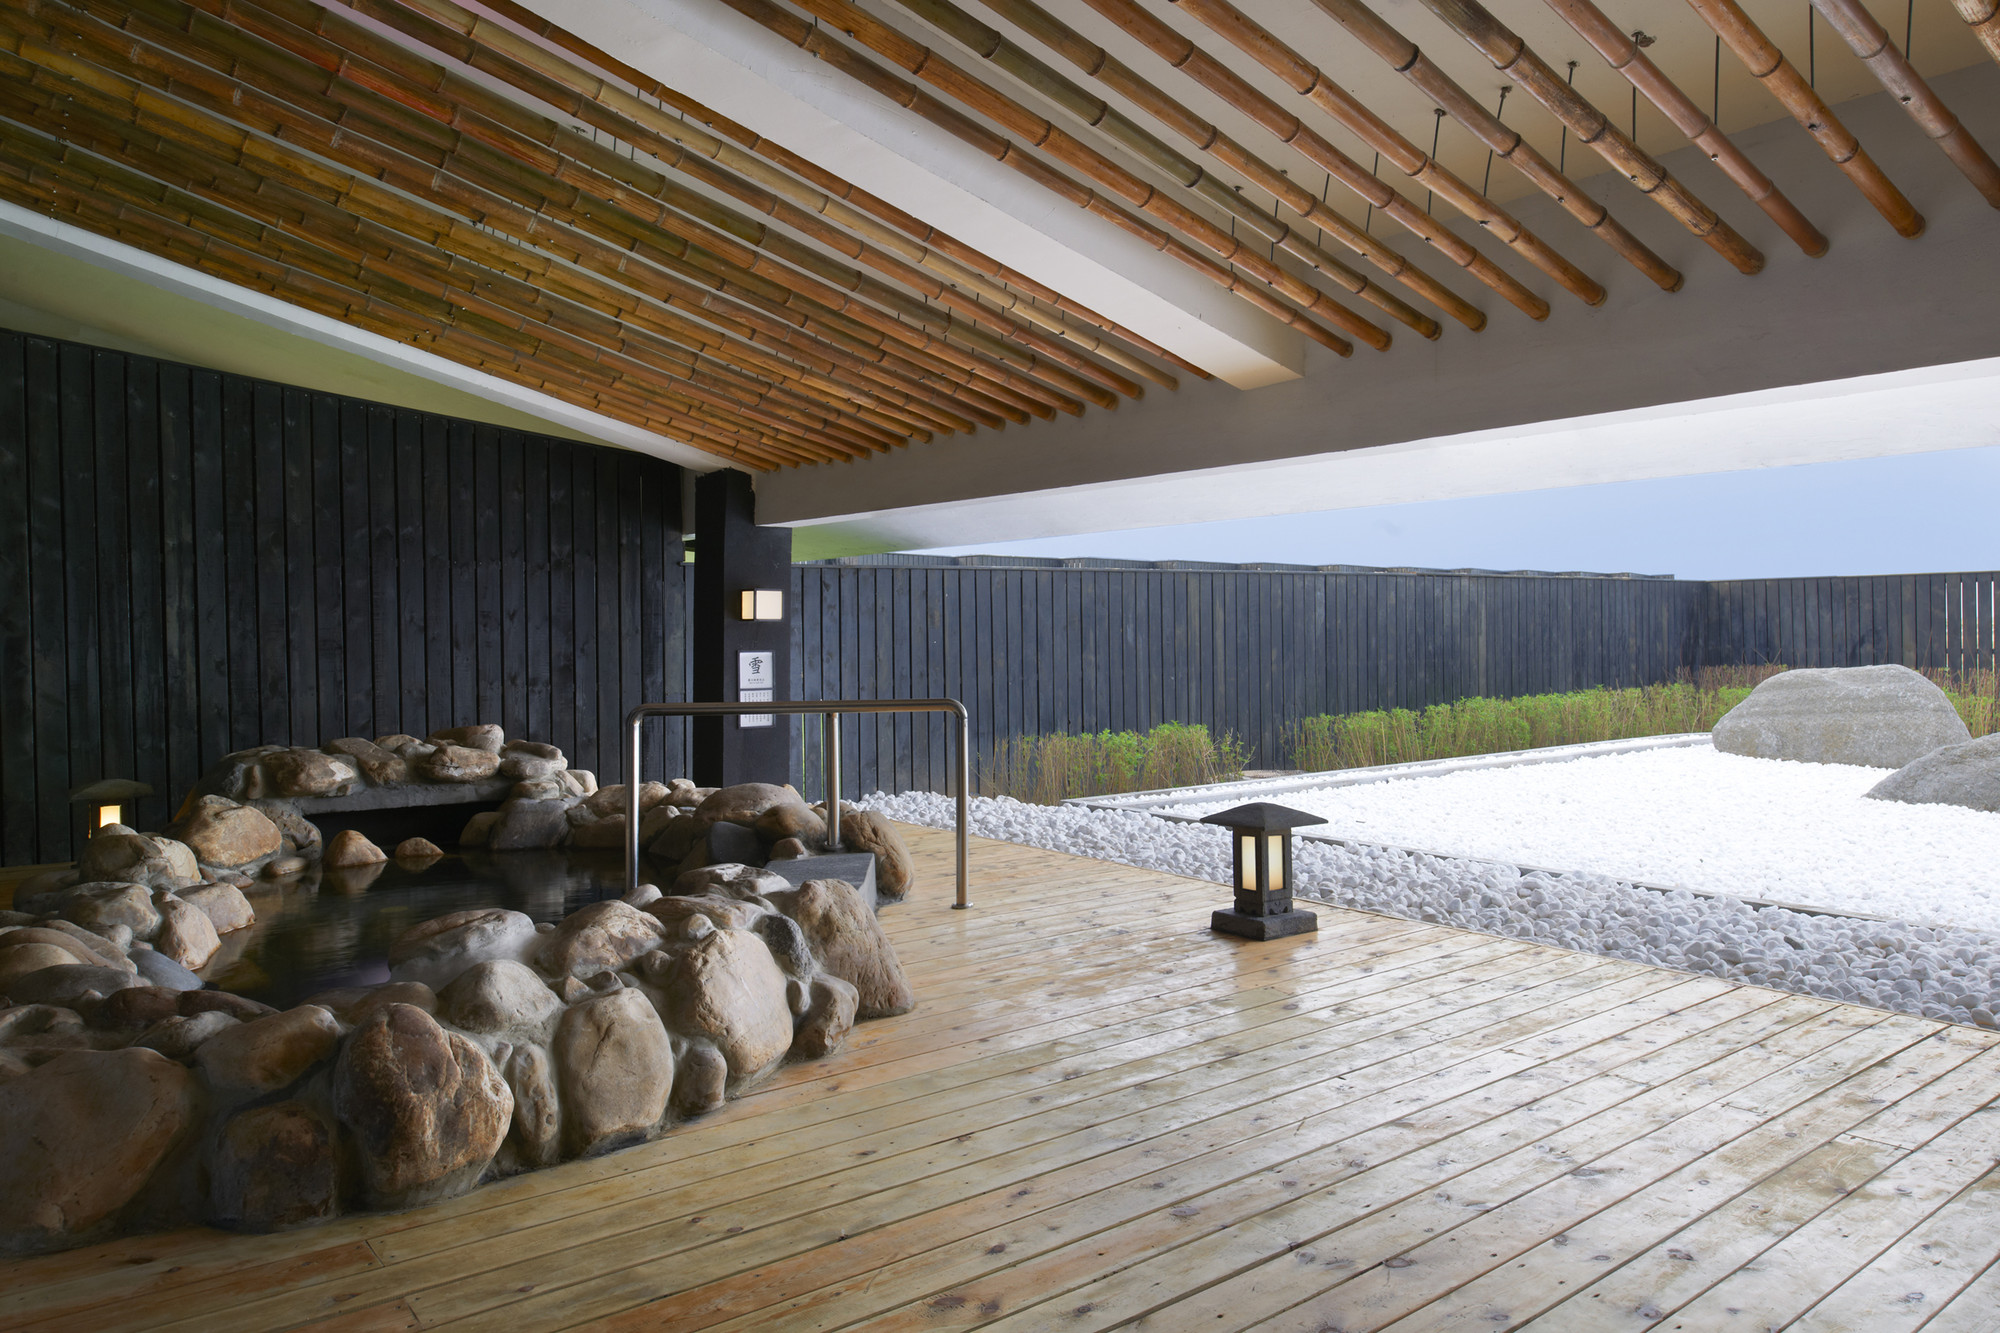 Qiqihaer Hezhitang Hot Spring  A-Asterisk  Archdaily-3850